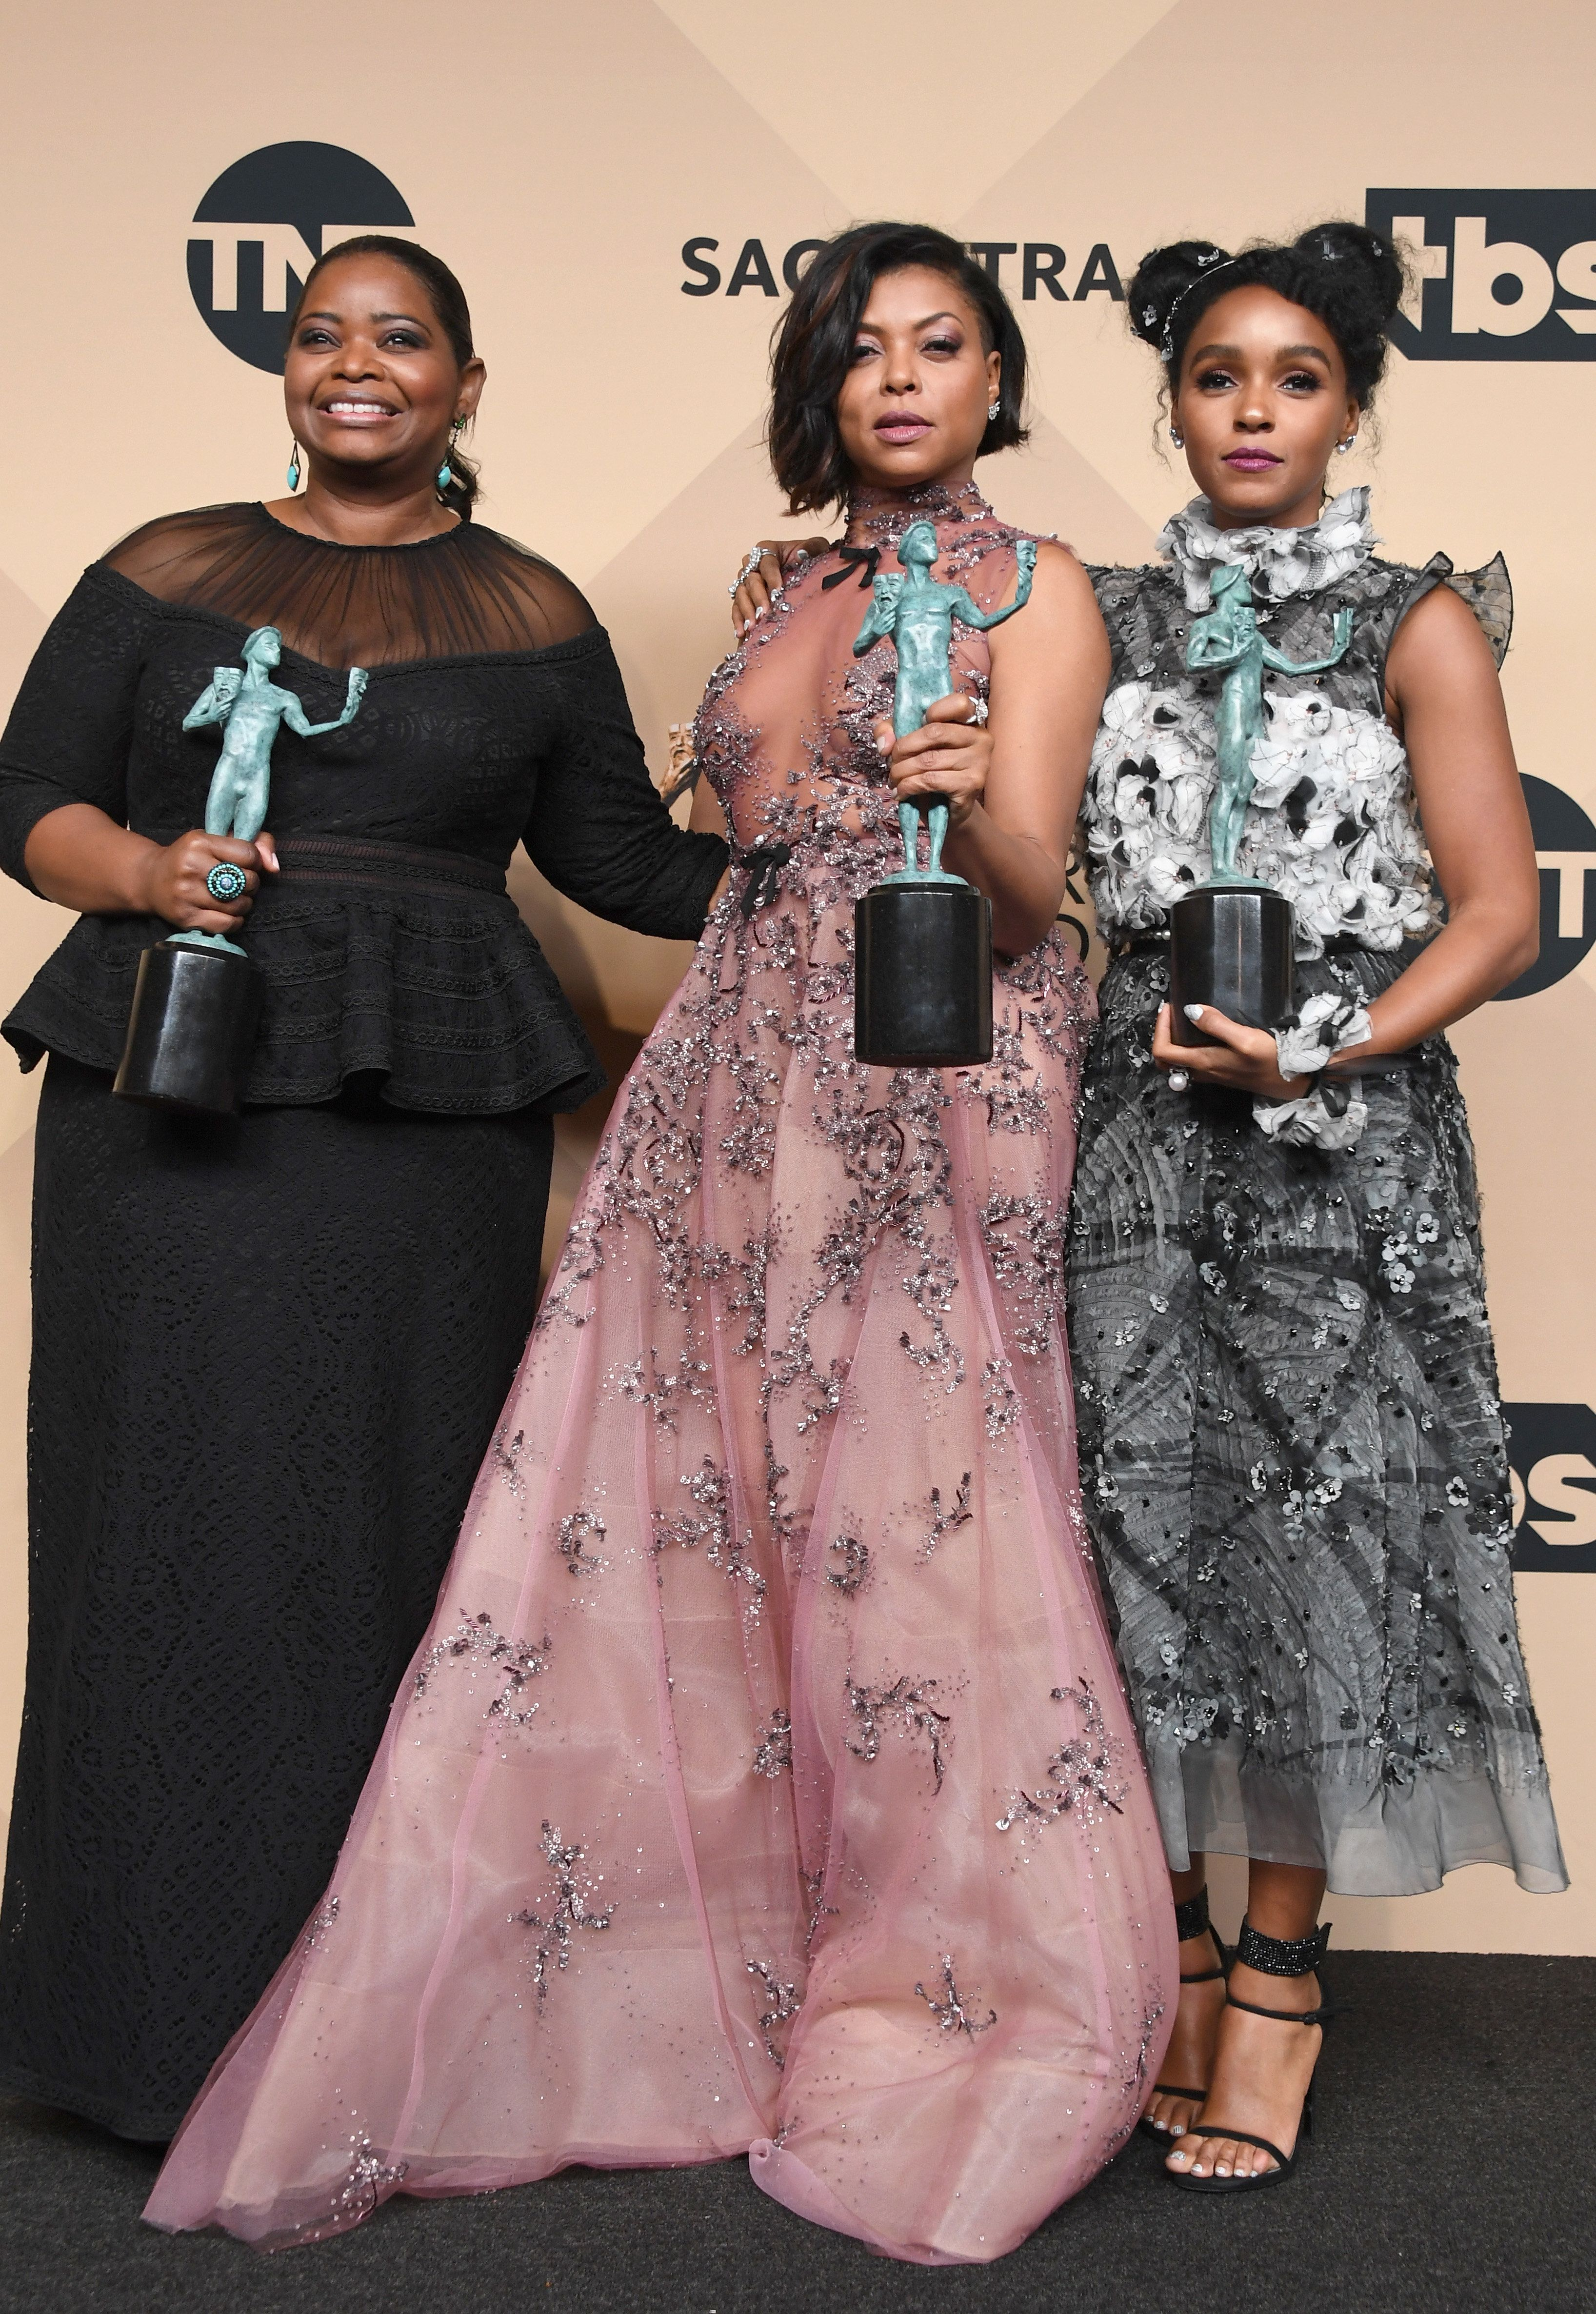 LOS ANGELES, CA - JANUARY 29:  (L-R) Actors Octavia Spencer, Taraji P. Henson and Janelle Monae co-recipients of the Outstanding Performance by a Cast in a Motion Picture award for 'Hidden Figures,' poses in the press room during the 23rd Annual Screen Actors Guild Awards at The Shrine Expo Hall on January 29, 2017 in Los Angeles, California.  (Photo by Alberto E. Rodriguez/Getty Images)